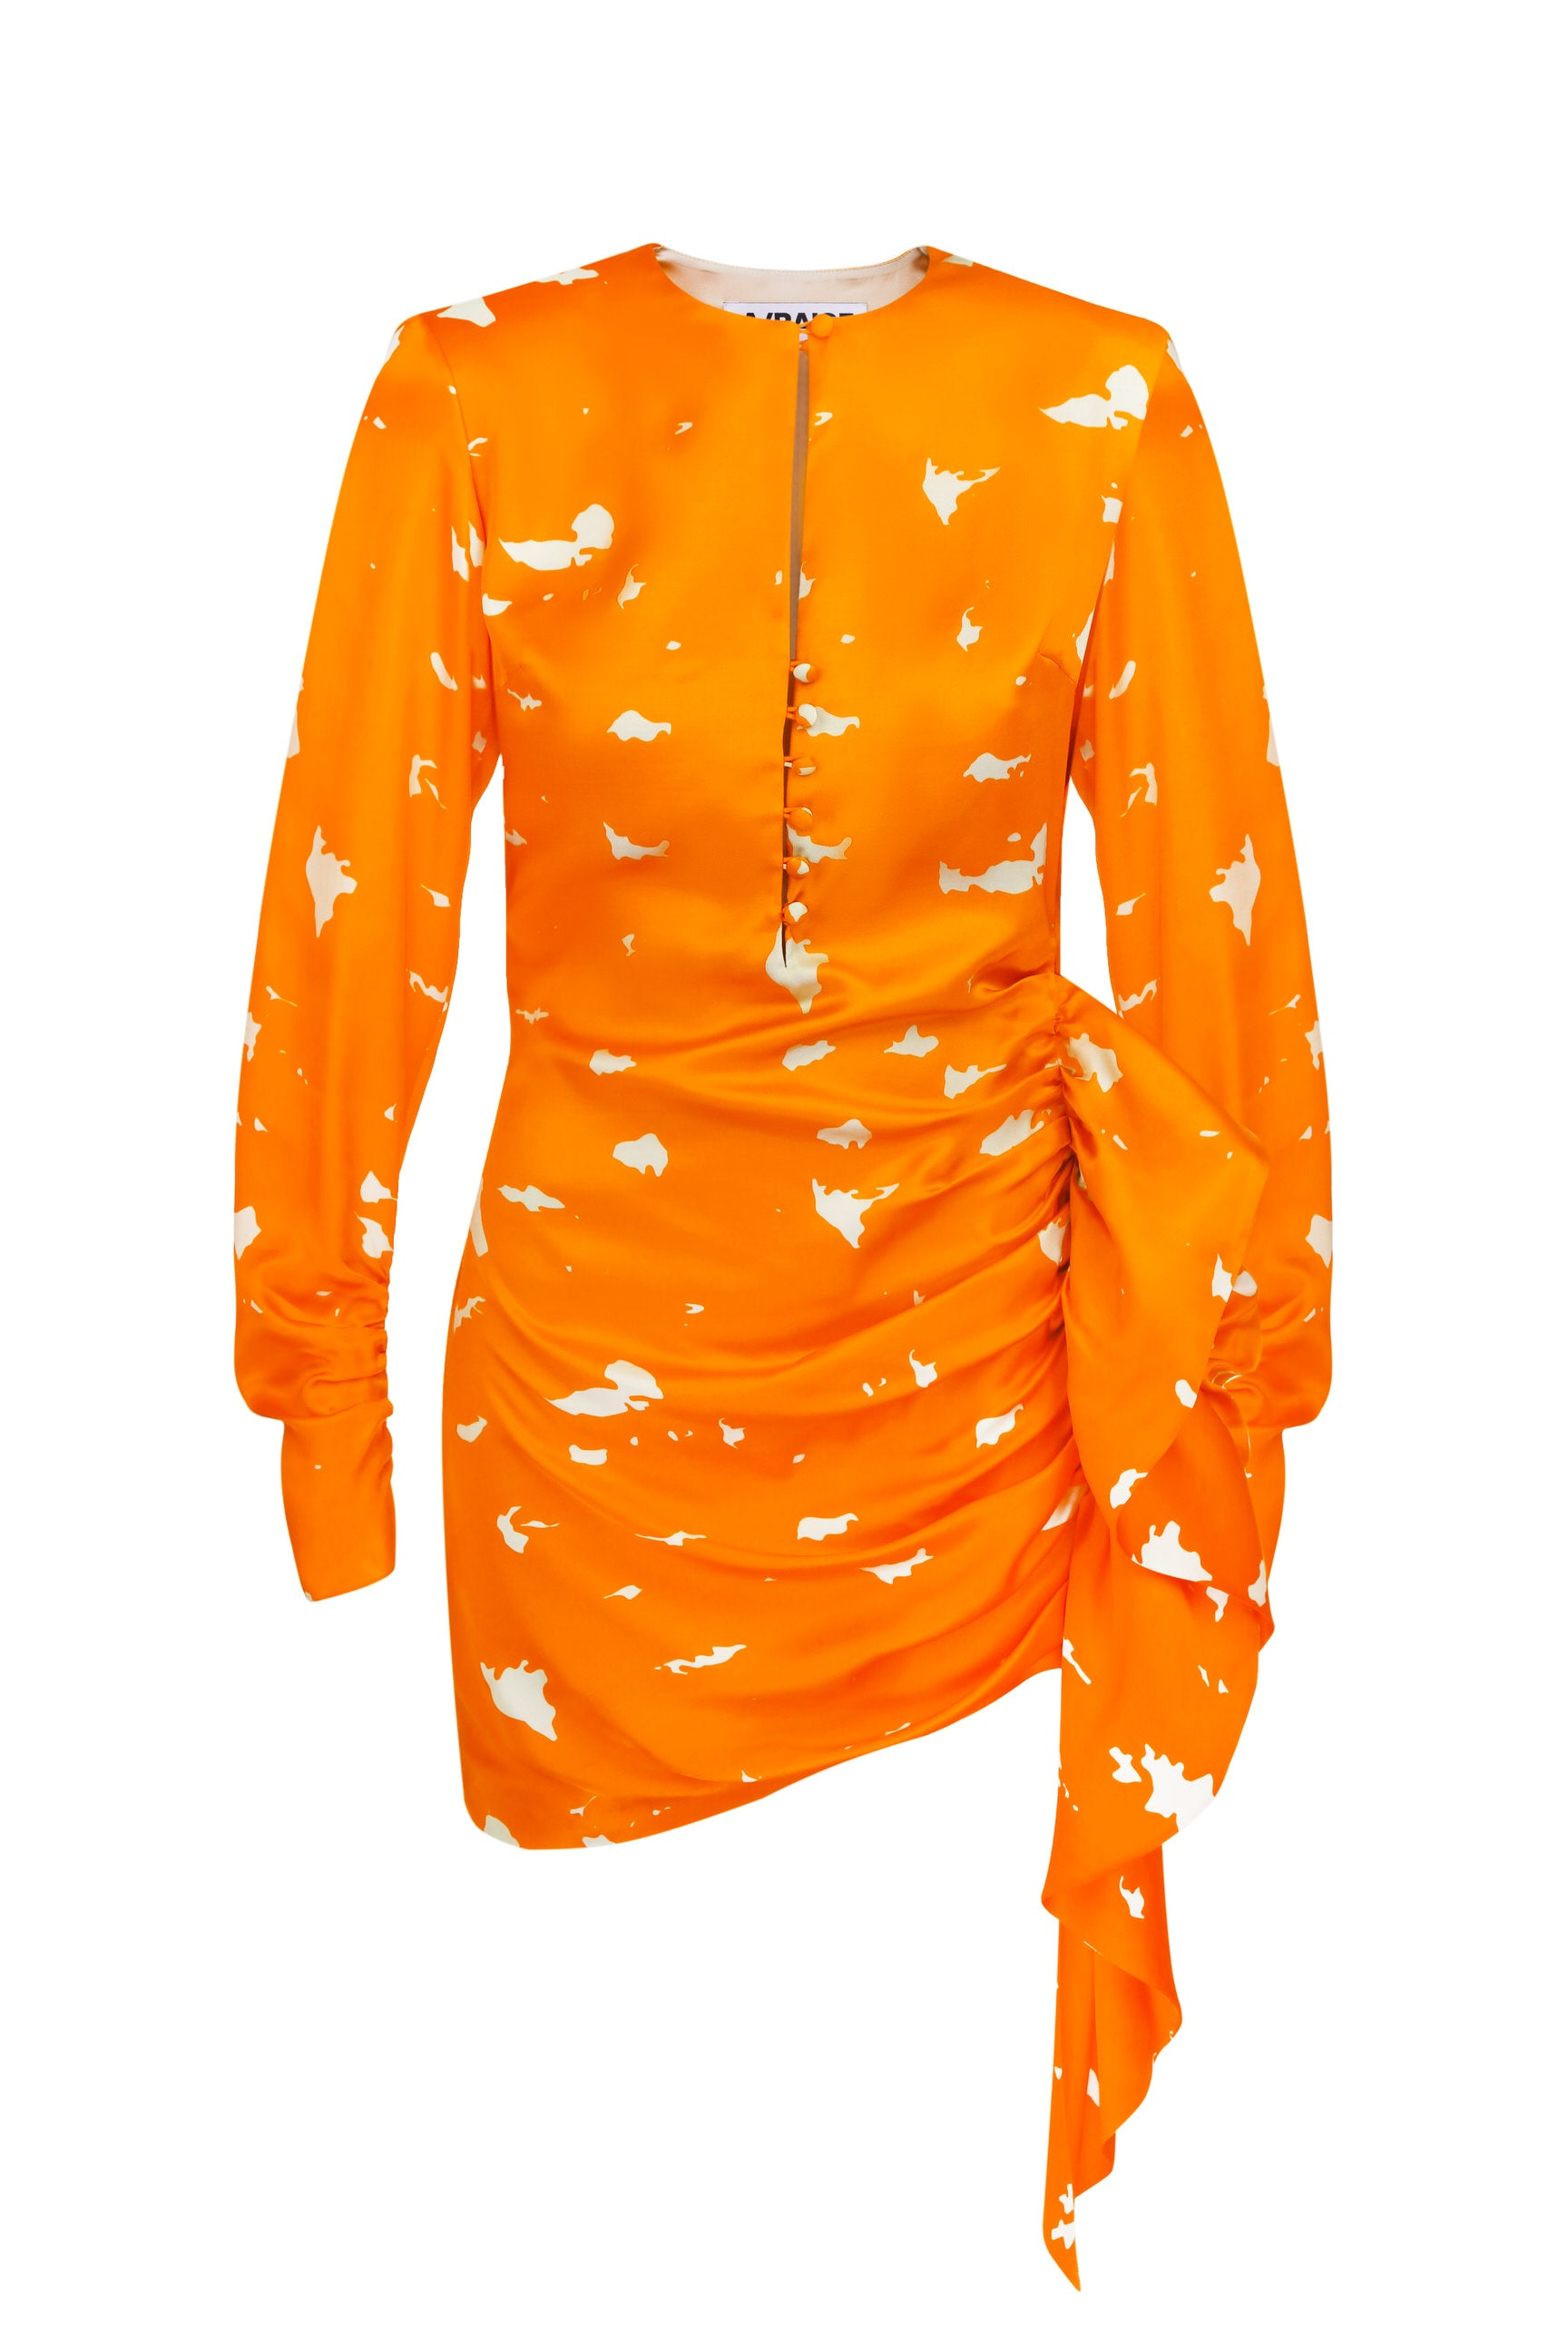 Mini dress orange viscose with a tail print birch